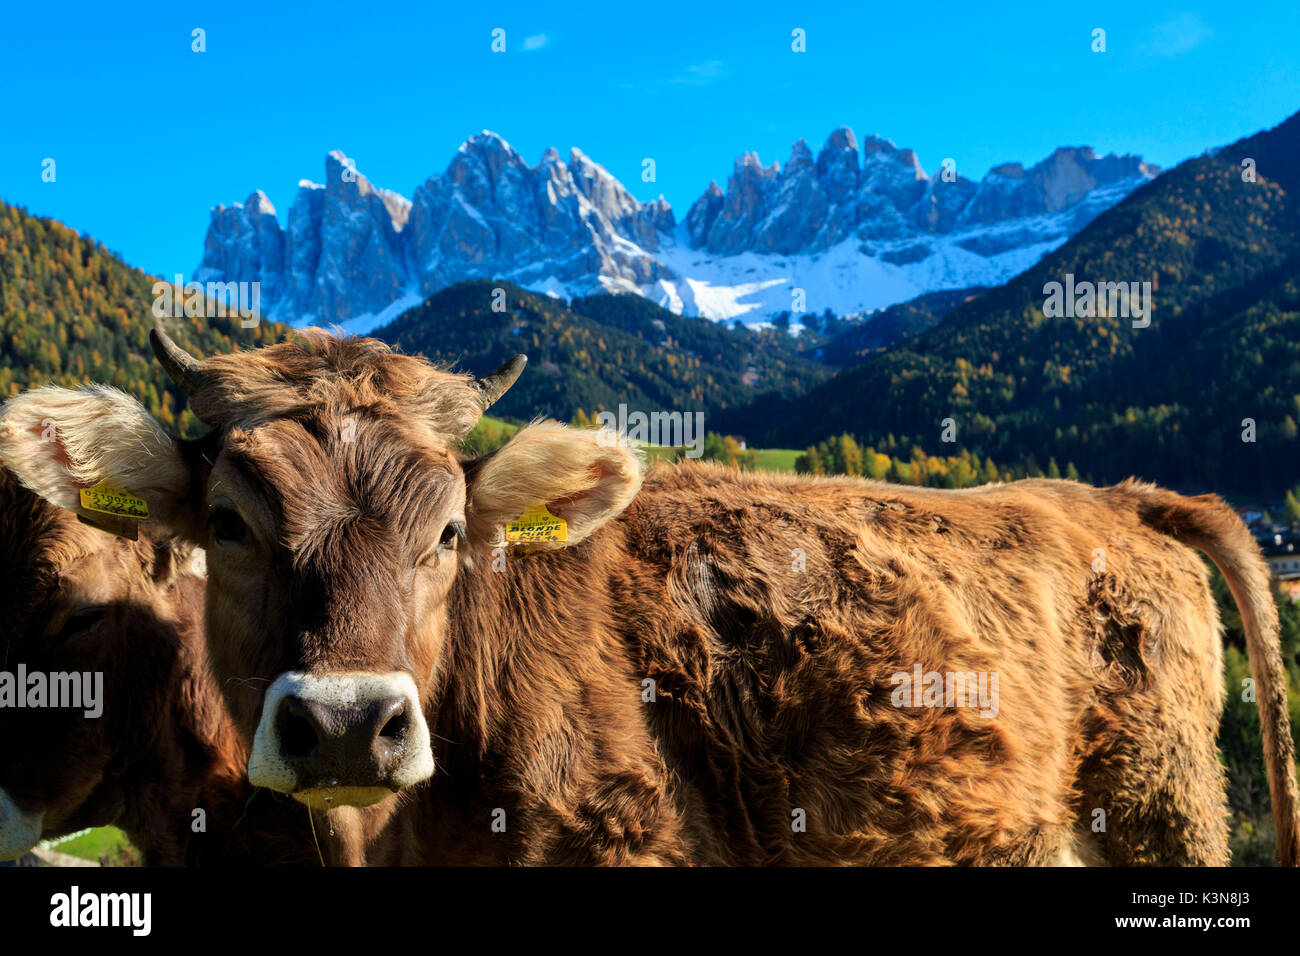 Odle in autumn, Dolomiti, alto adige, italy, europe - Stock Image